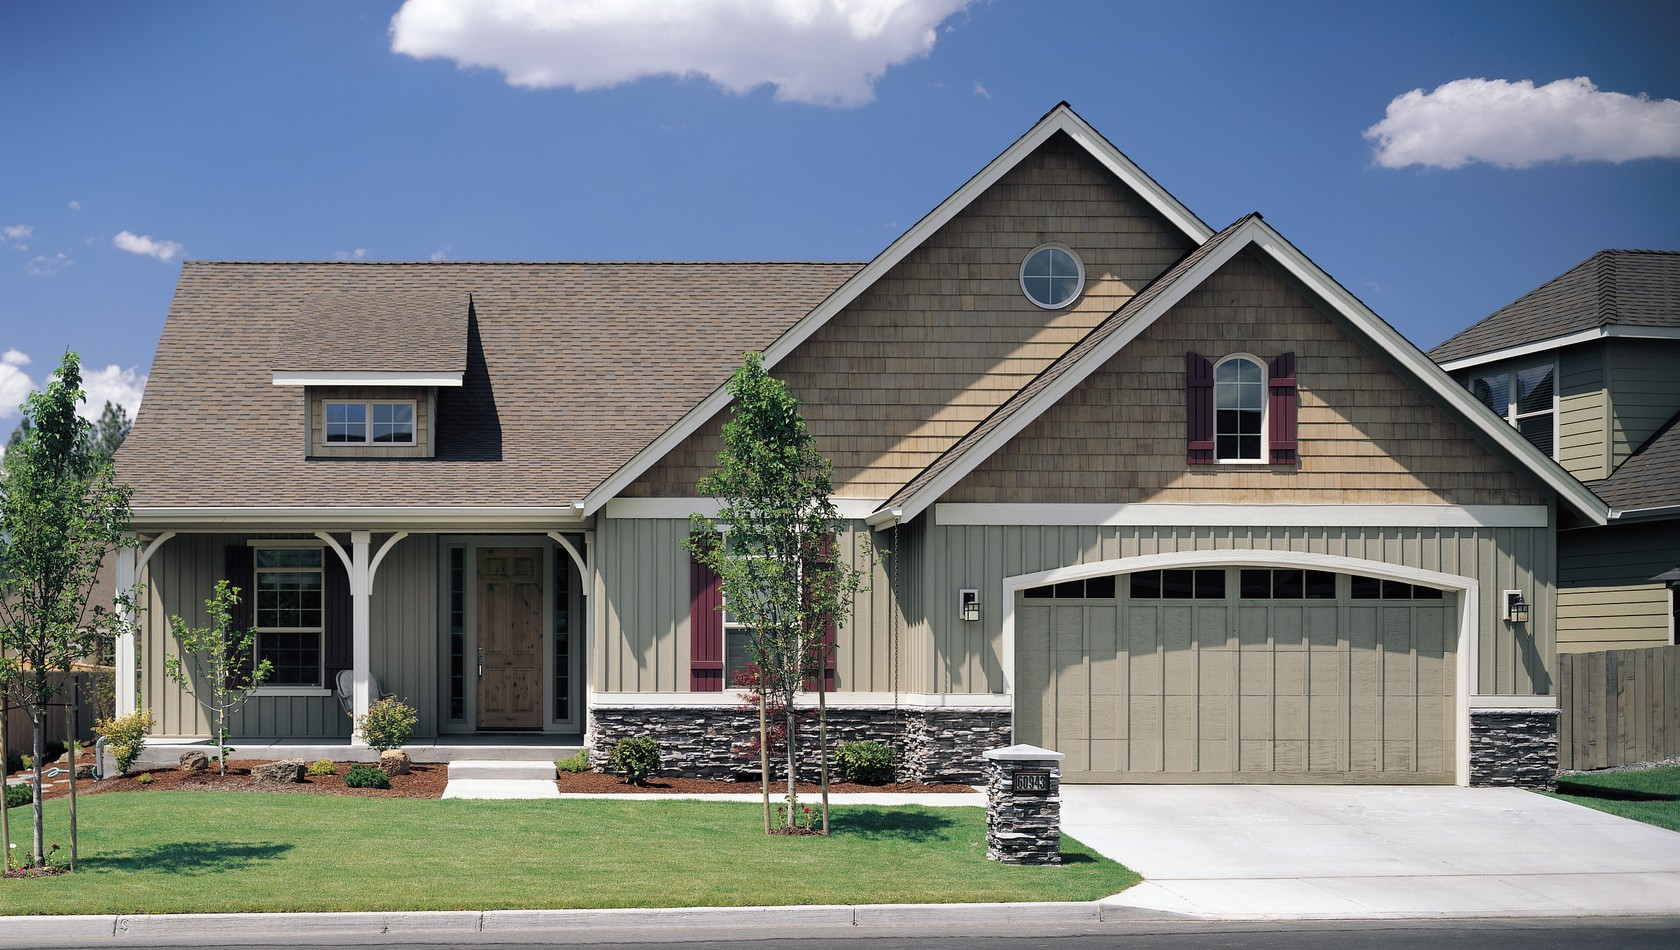 Main image for house plan 1150: The Lindley